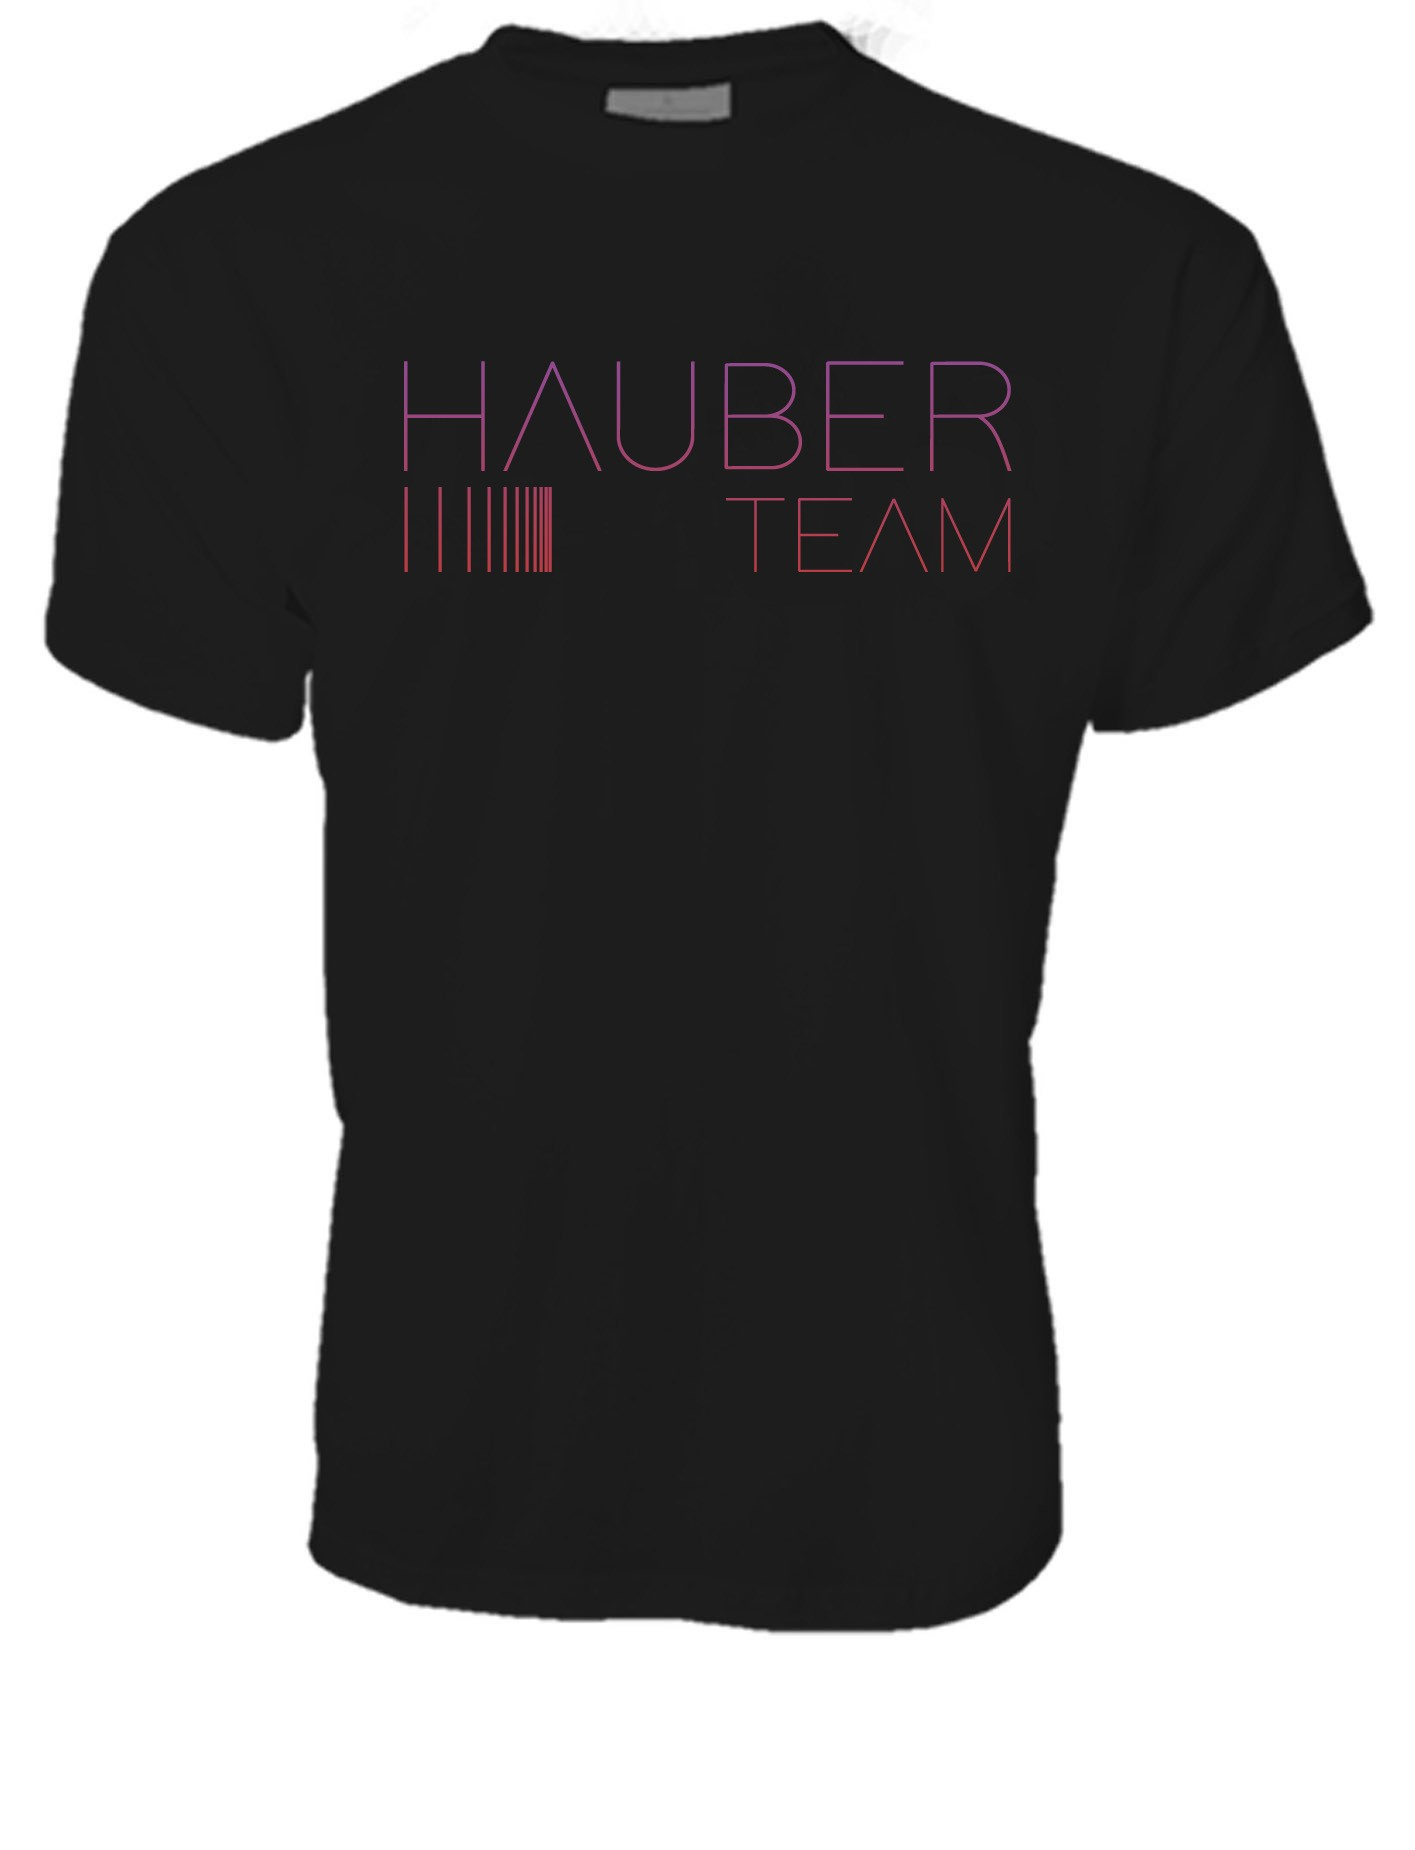 MEN CREW NECK T-SHIRT / HAUBER TEAM